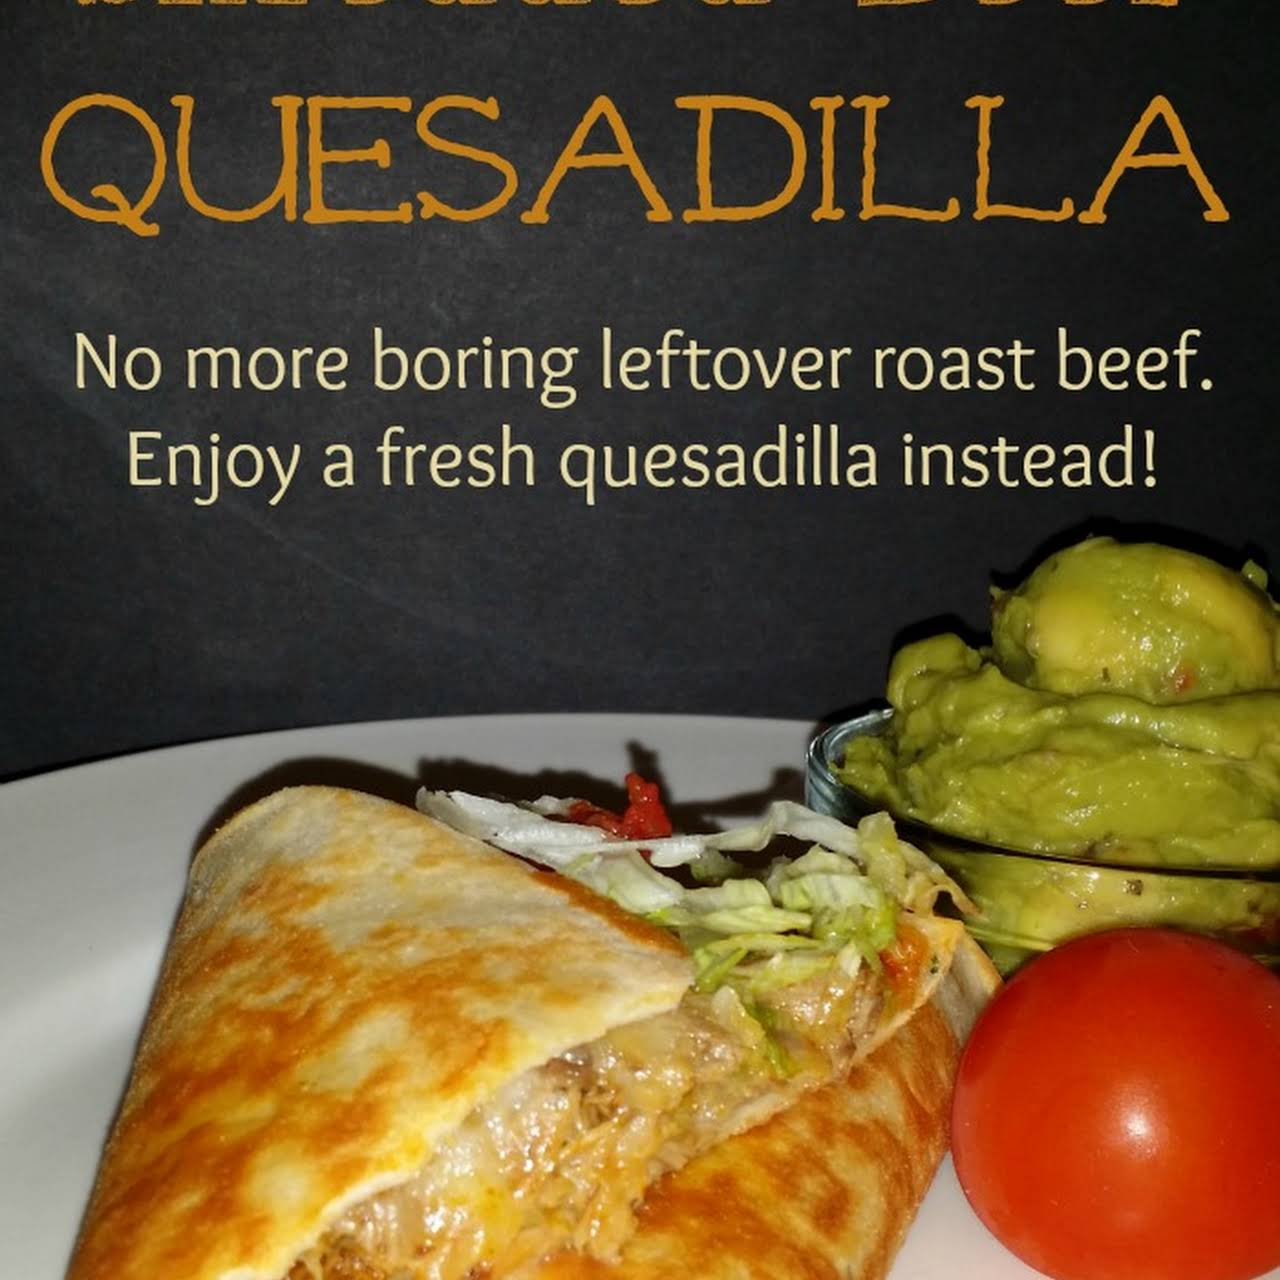 Shredded Beef Quesadilla Recipe  considering Zeal Kitchen Products